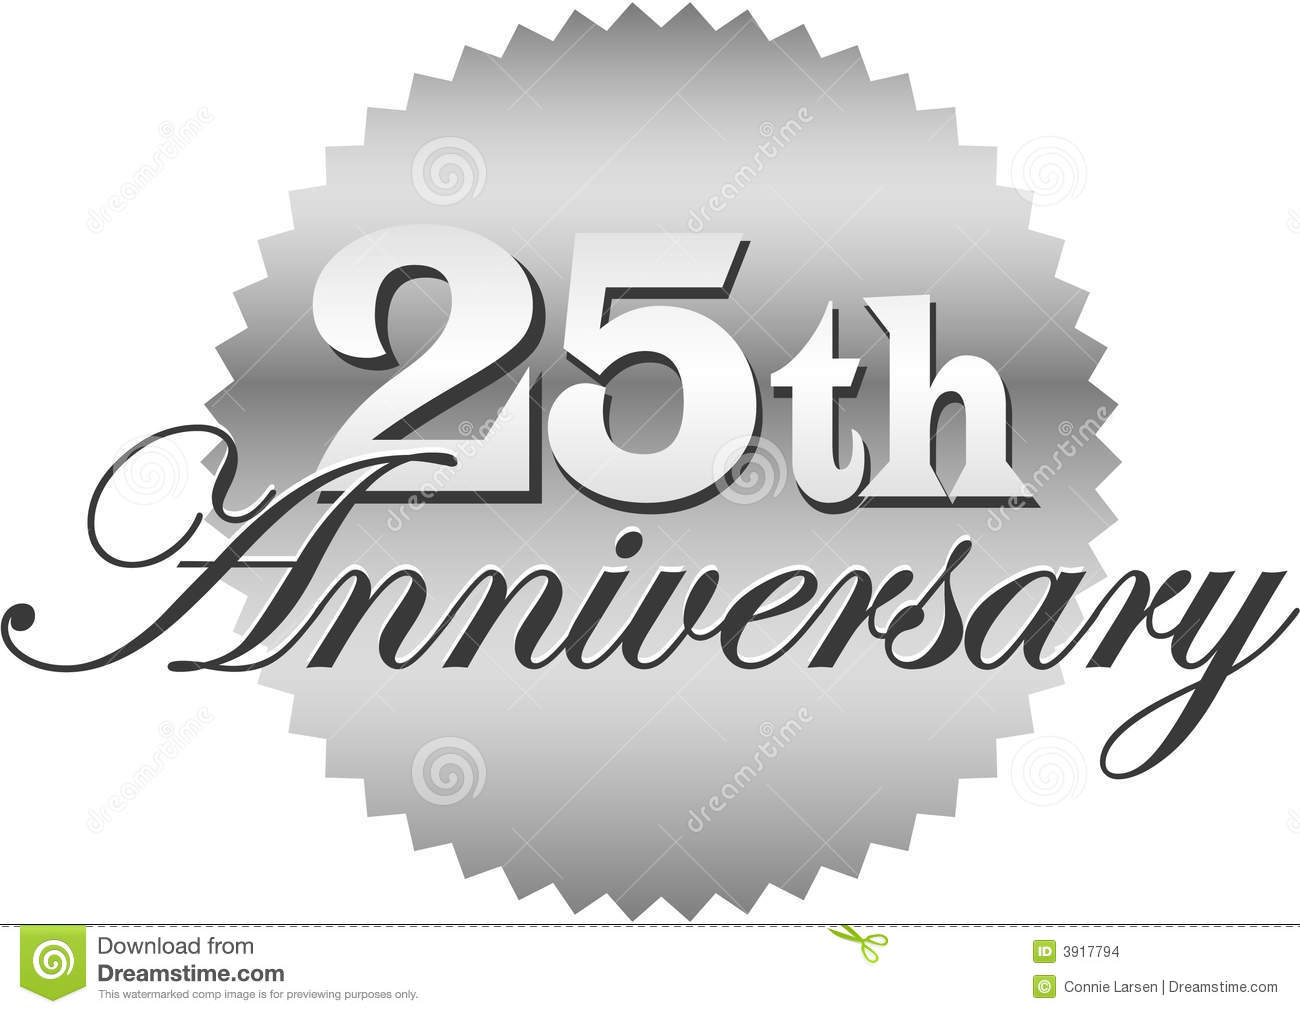 Image result for 25th anniversary images